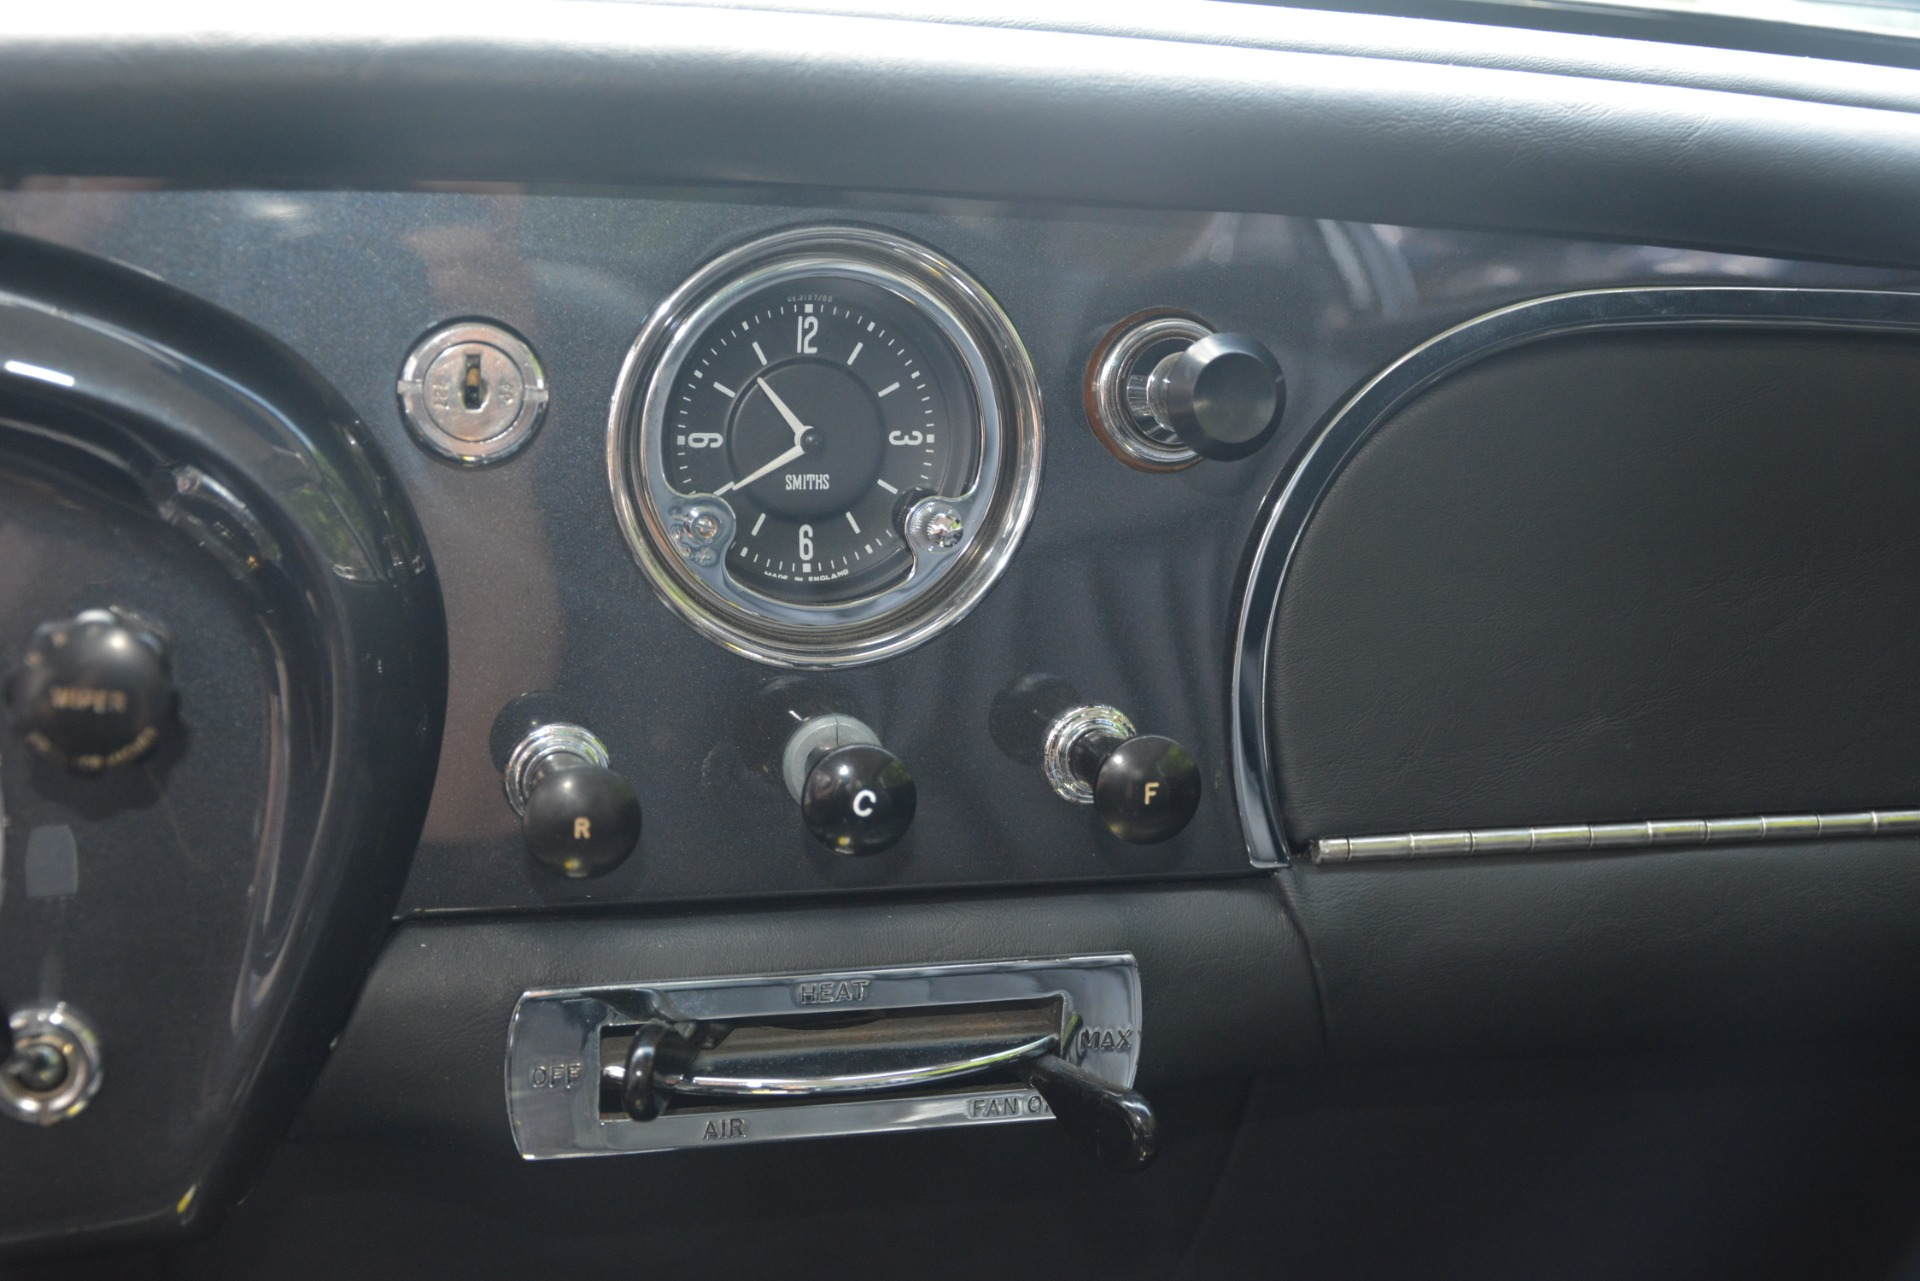 Used 1961 Aston Martin DB4 Series IV Coupe For Sale In Westport, CT 3186_p30